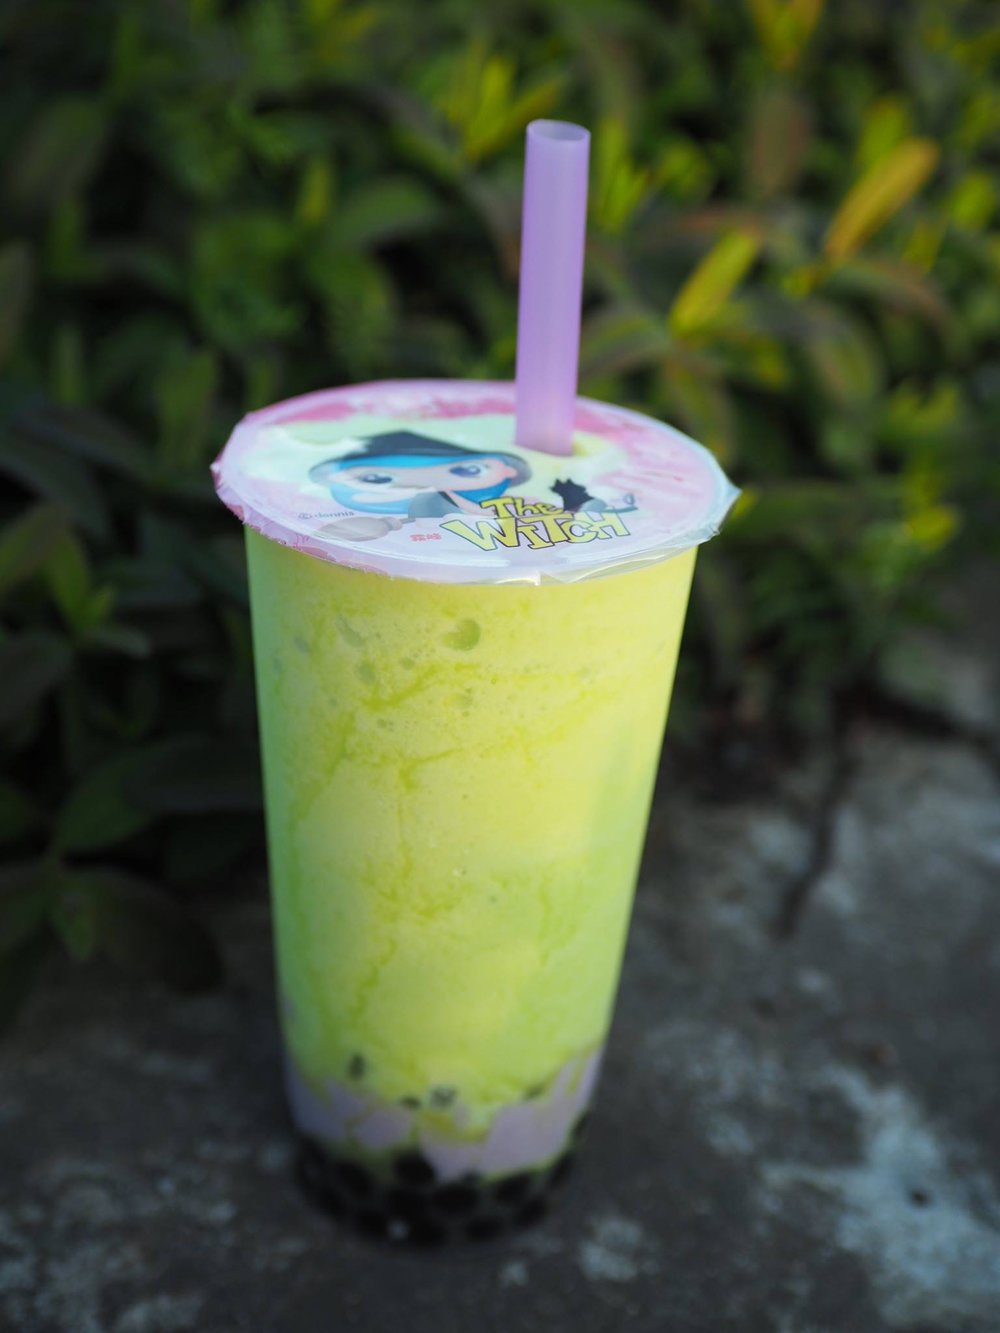 Honeydew Pear w/Boba and Taro Pudding